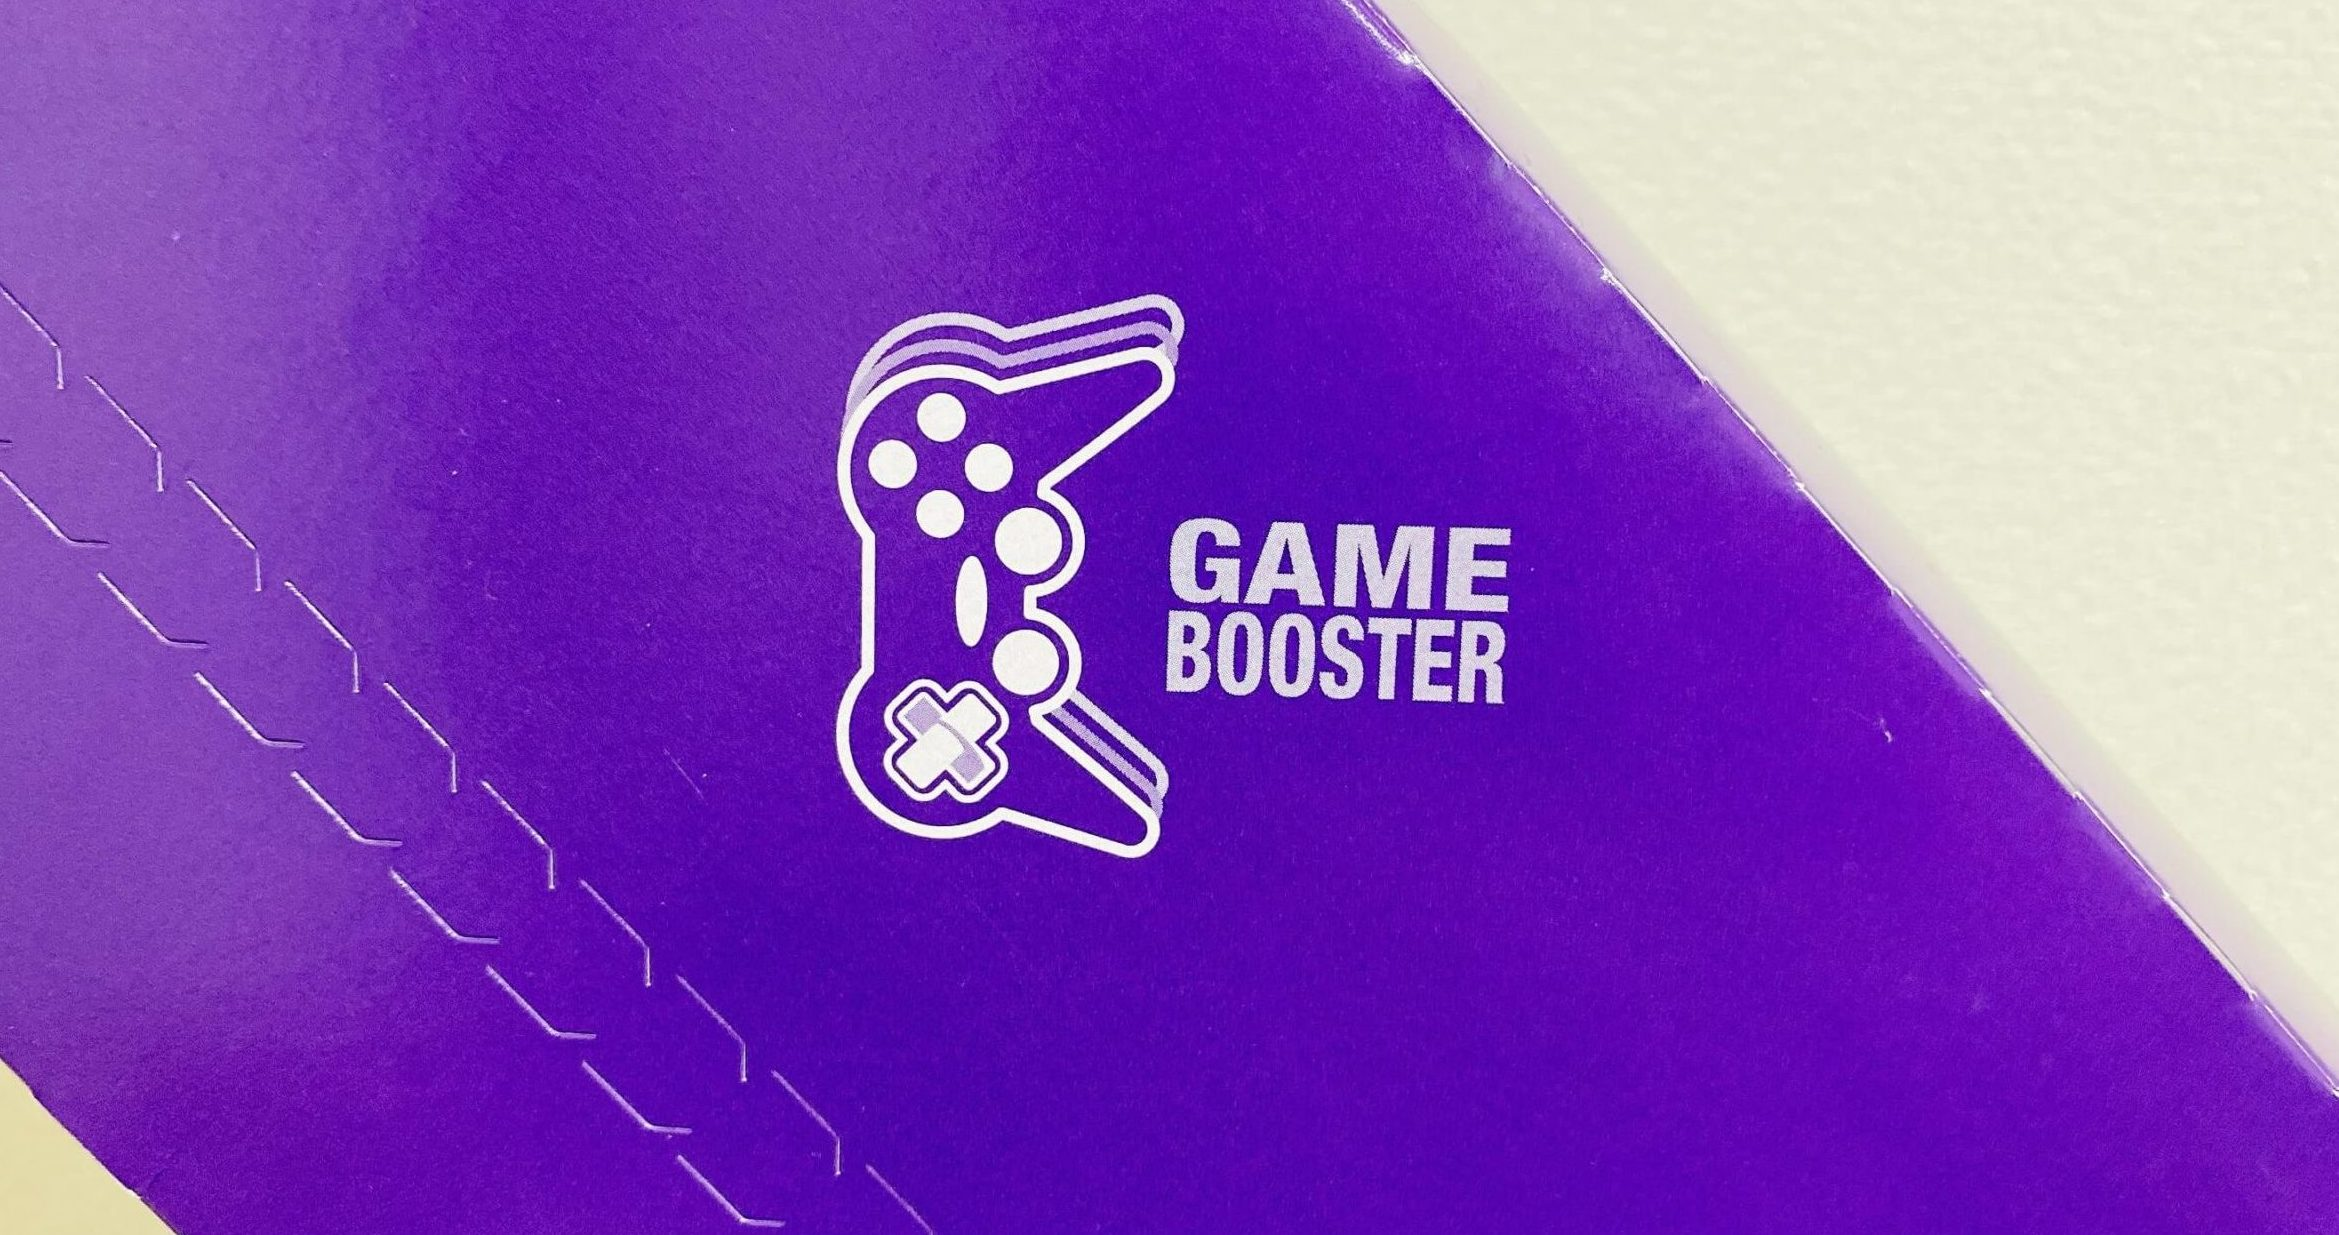 GAME BOOSTERのロゴ